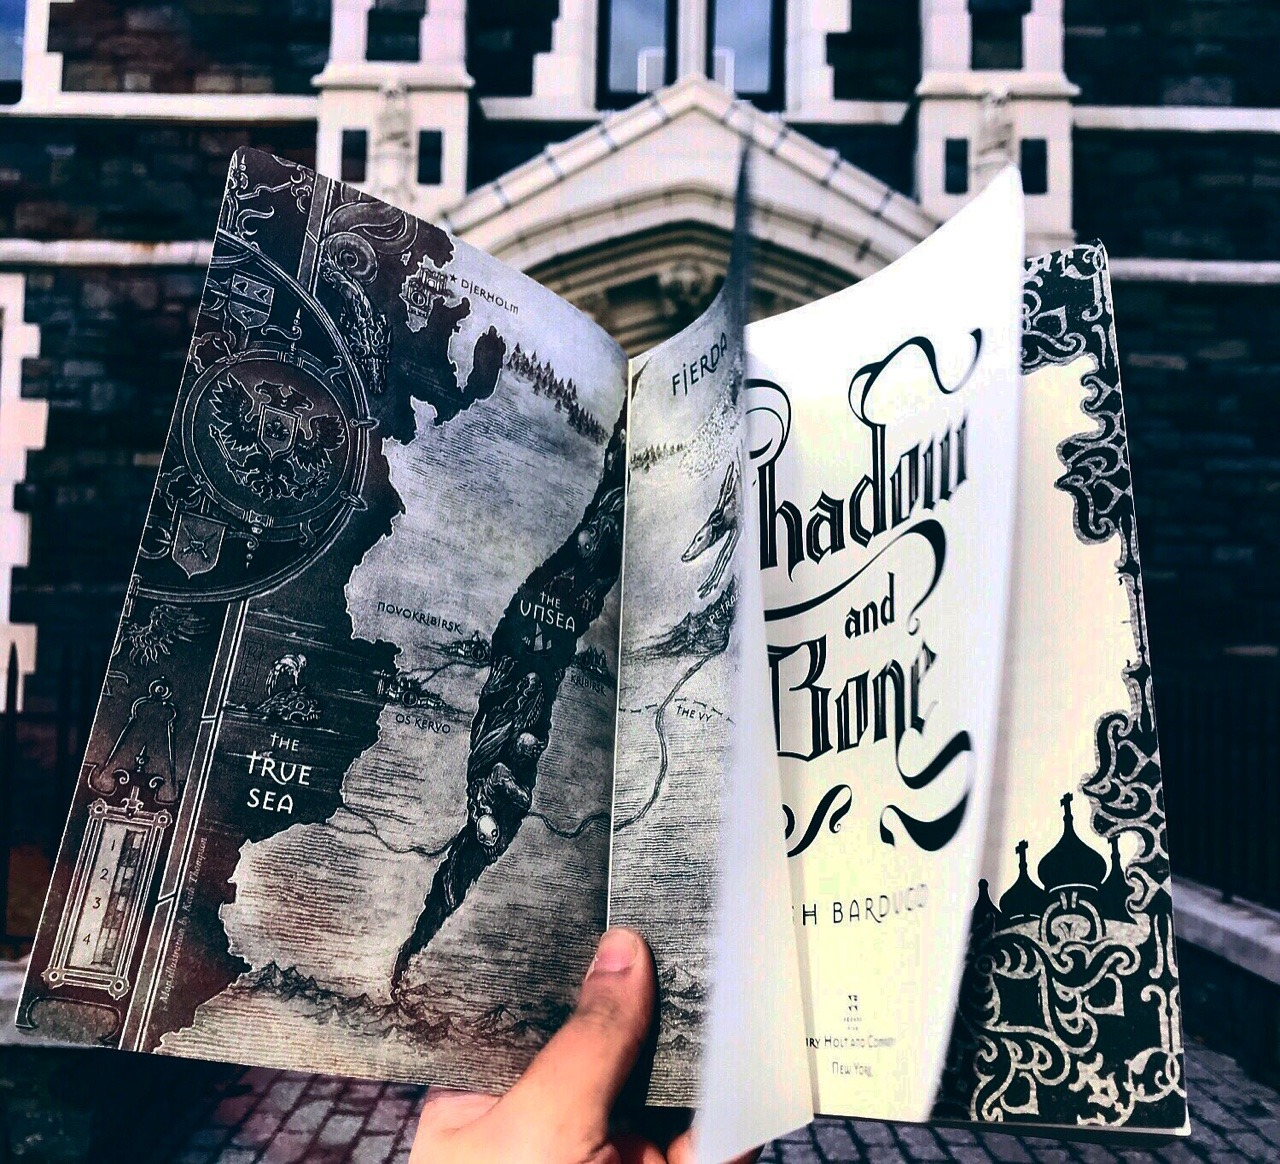 Just finished reading Shadow and Bone and the ending has me reeling. Is it crazy that I'm still rooting for the Darkling?